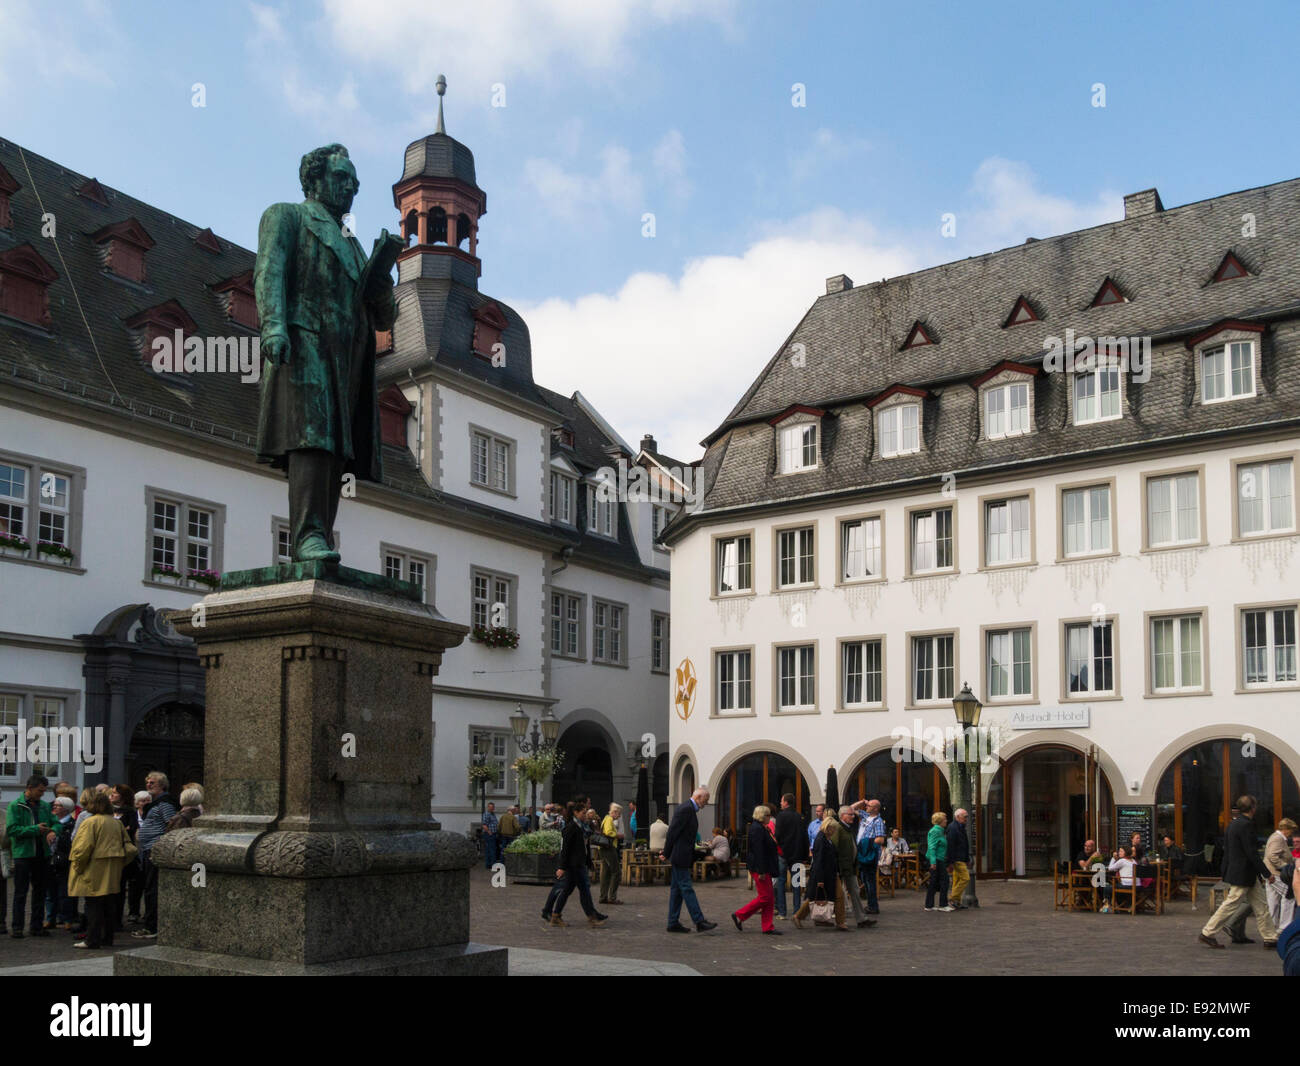 Statue Johannes Muller (1801 - 58) anatomist and physiologist who was born in Koblenz,Germany EU In Jesuiten Platz - Stock Image